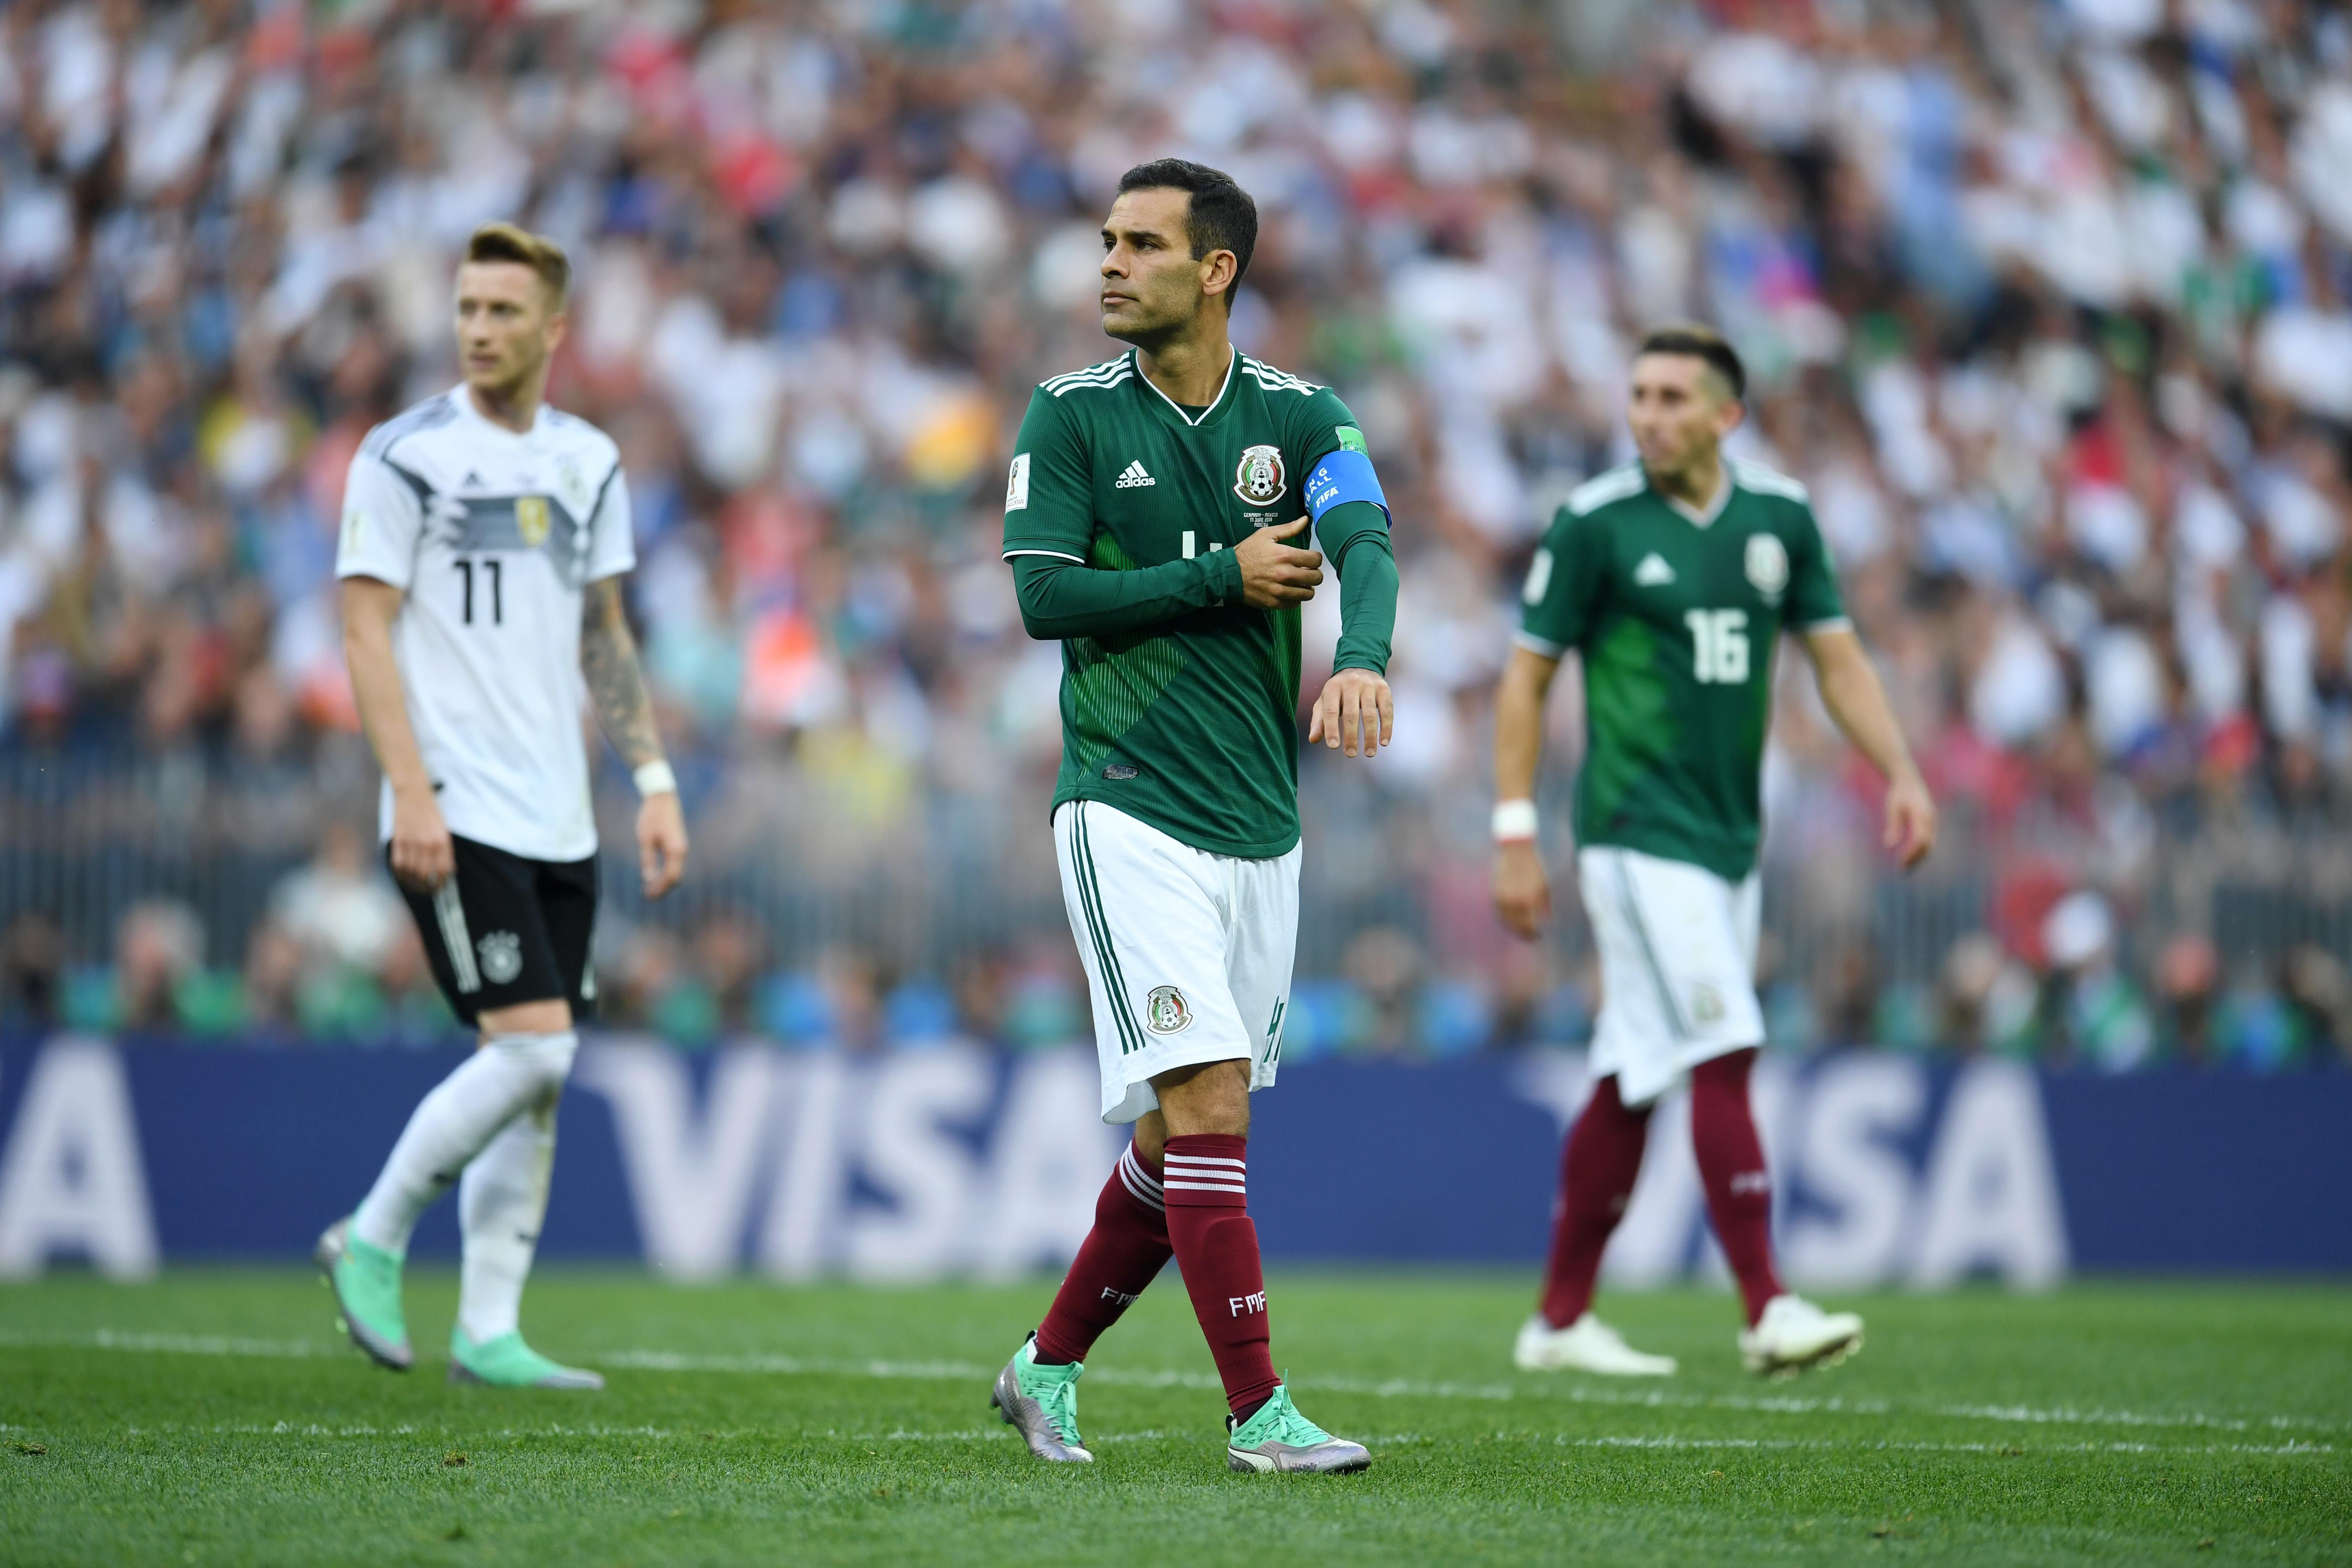 d4085634e Mexico s Marquez joins select group of players to appear in 5 World Cups